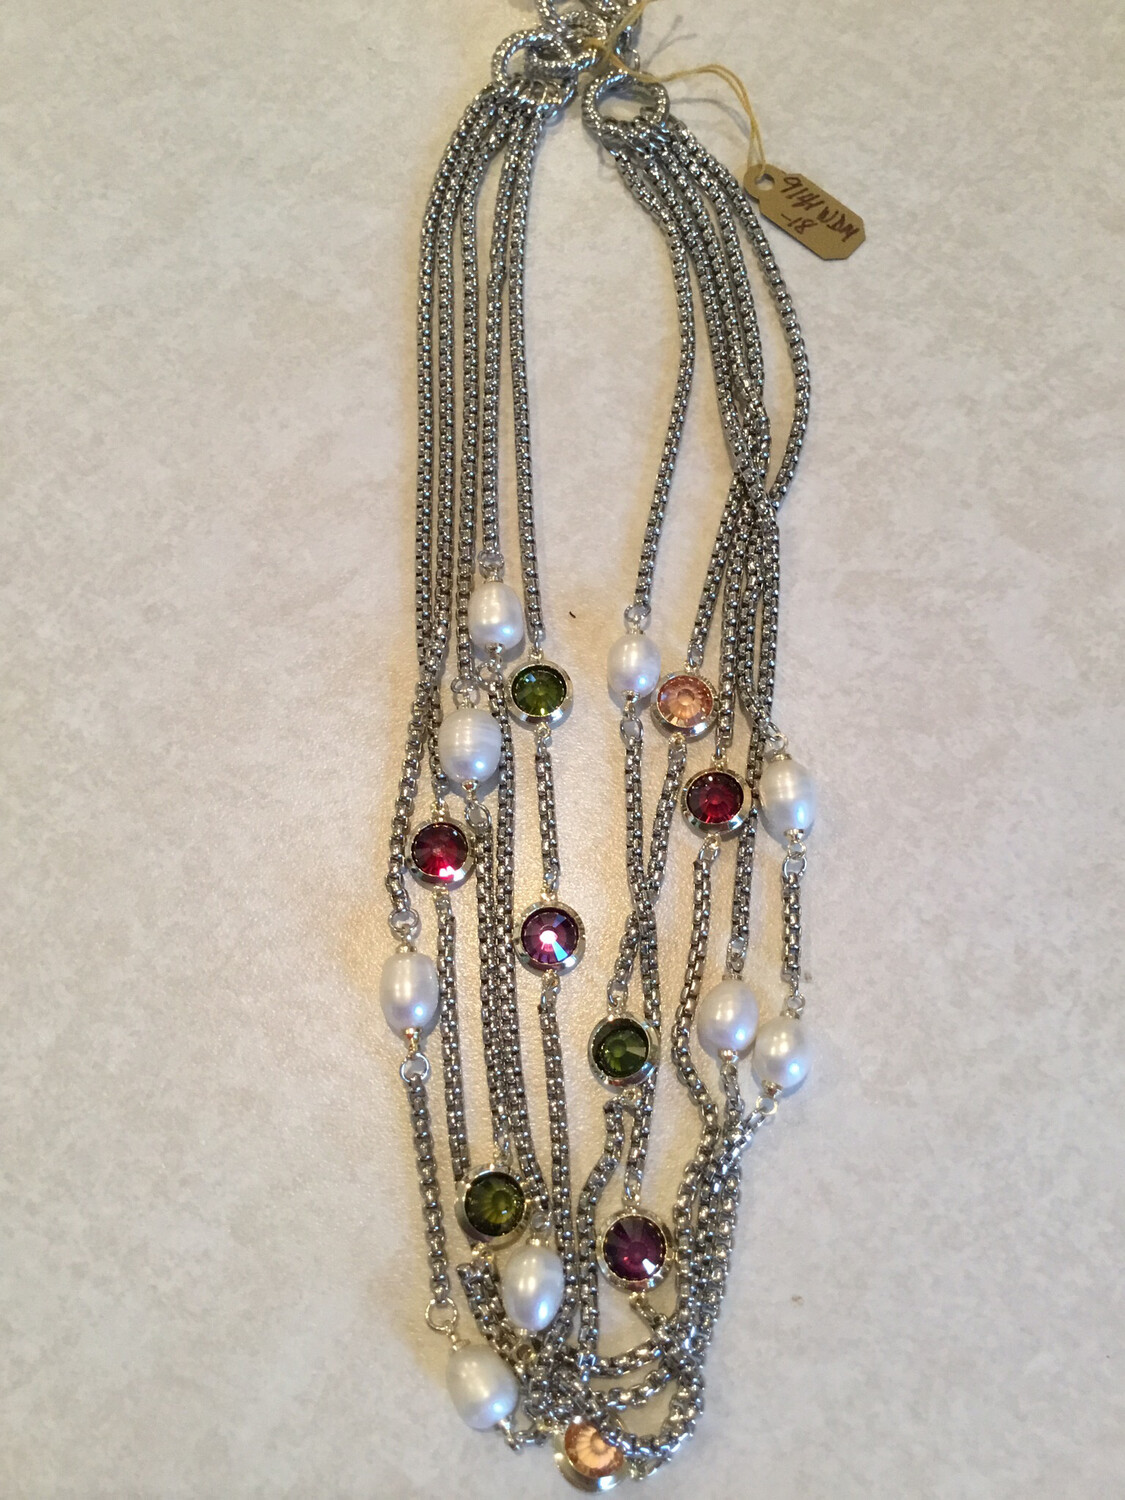 Five Layer Silver Necklace With Gemstones And Pearl